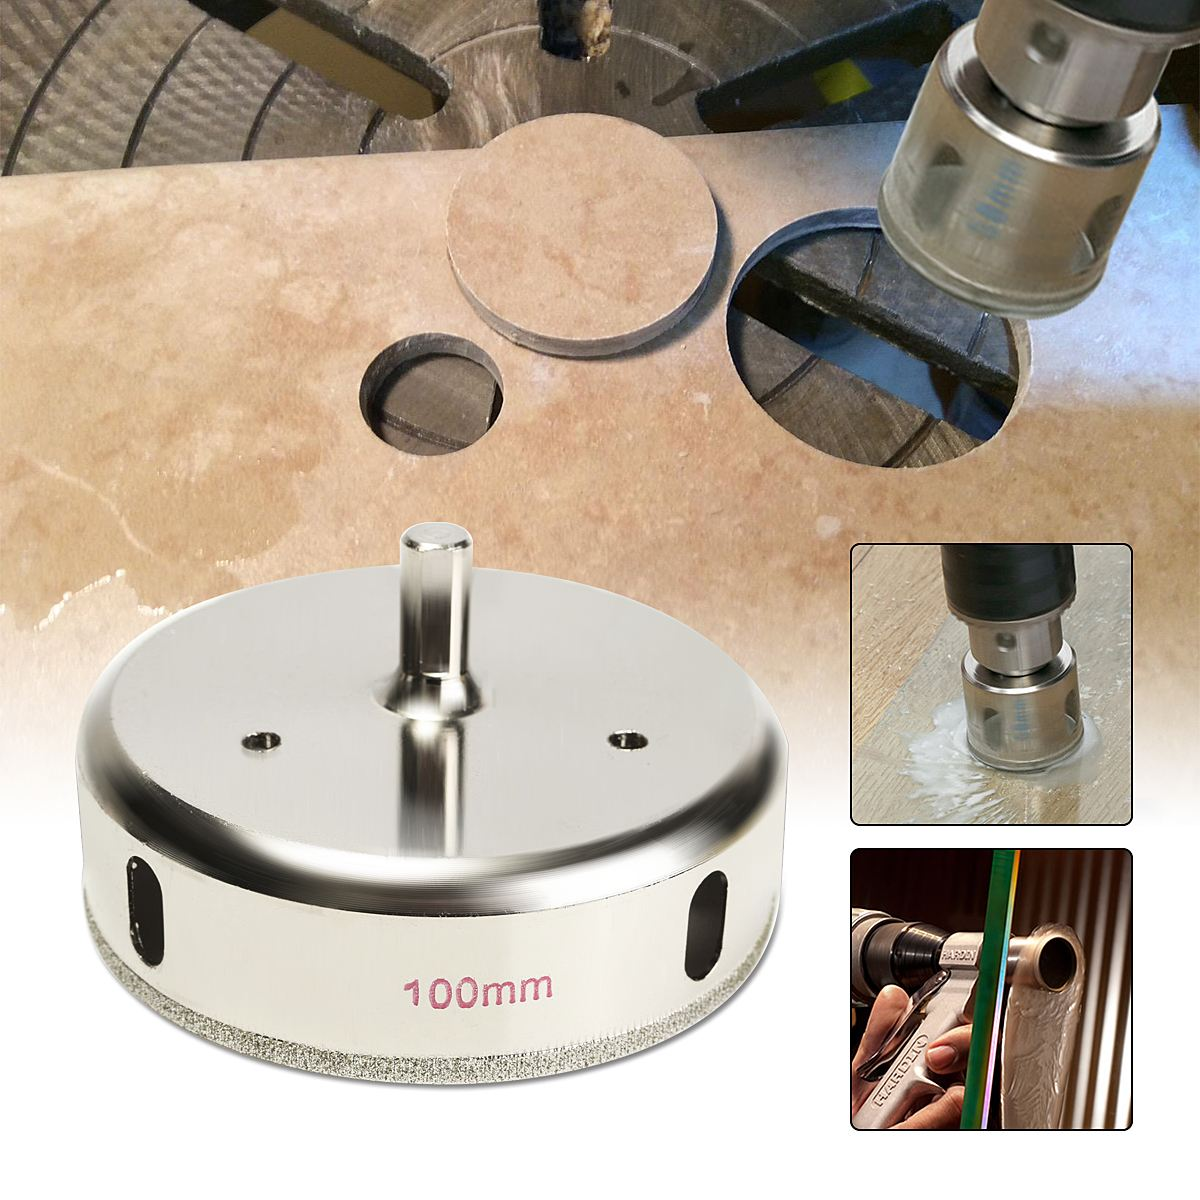 100mm 4 inch Diamond Coated Drill Bit Hole Saw Cutter Glass Tile Ceramic Marble Drilling Power Tool